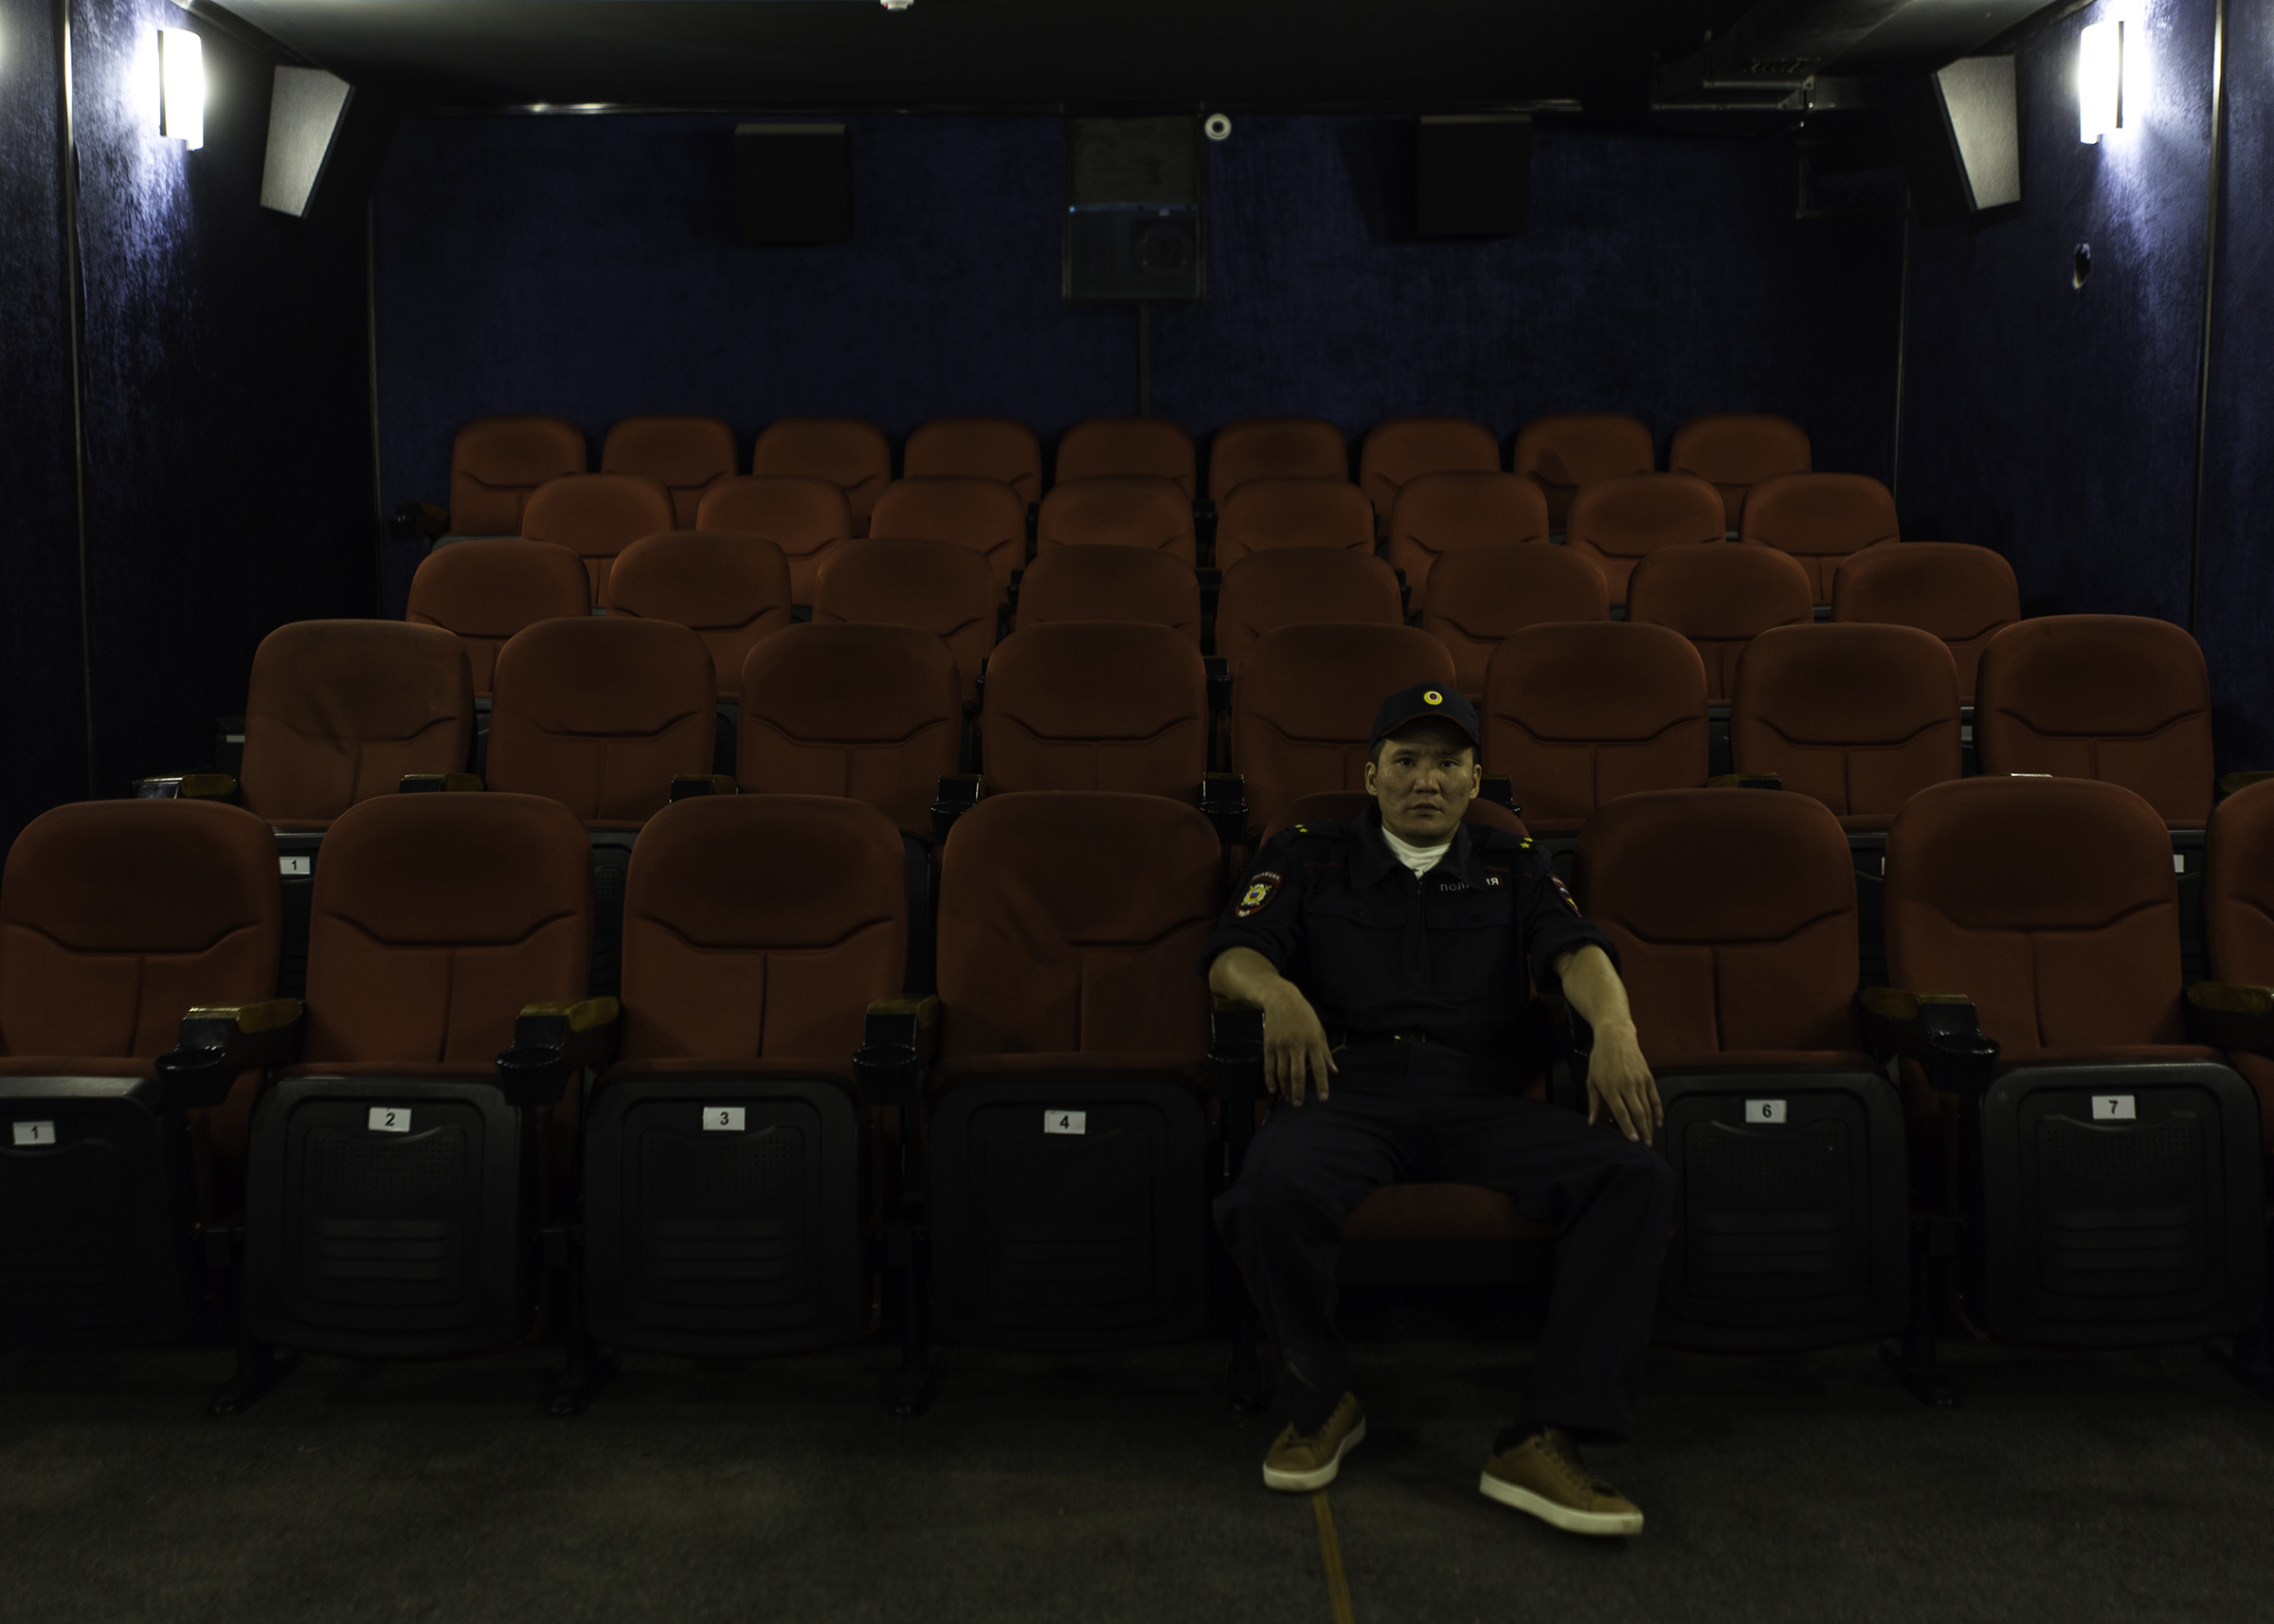 Theater actor Vladimir Okhlopkov, who played the role of a police officer in the horror film 'The Cursed Land' directed by Stepan Burnashev, poses in a small movie theater in Yakutsk, Yakutia in June 2019.